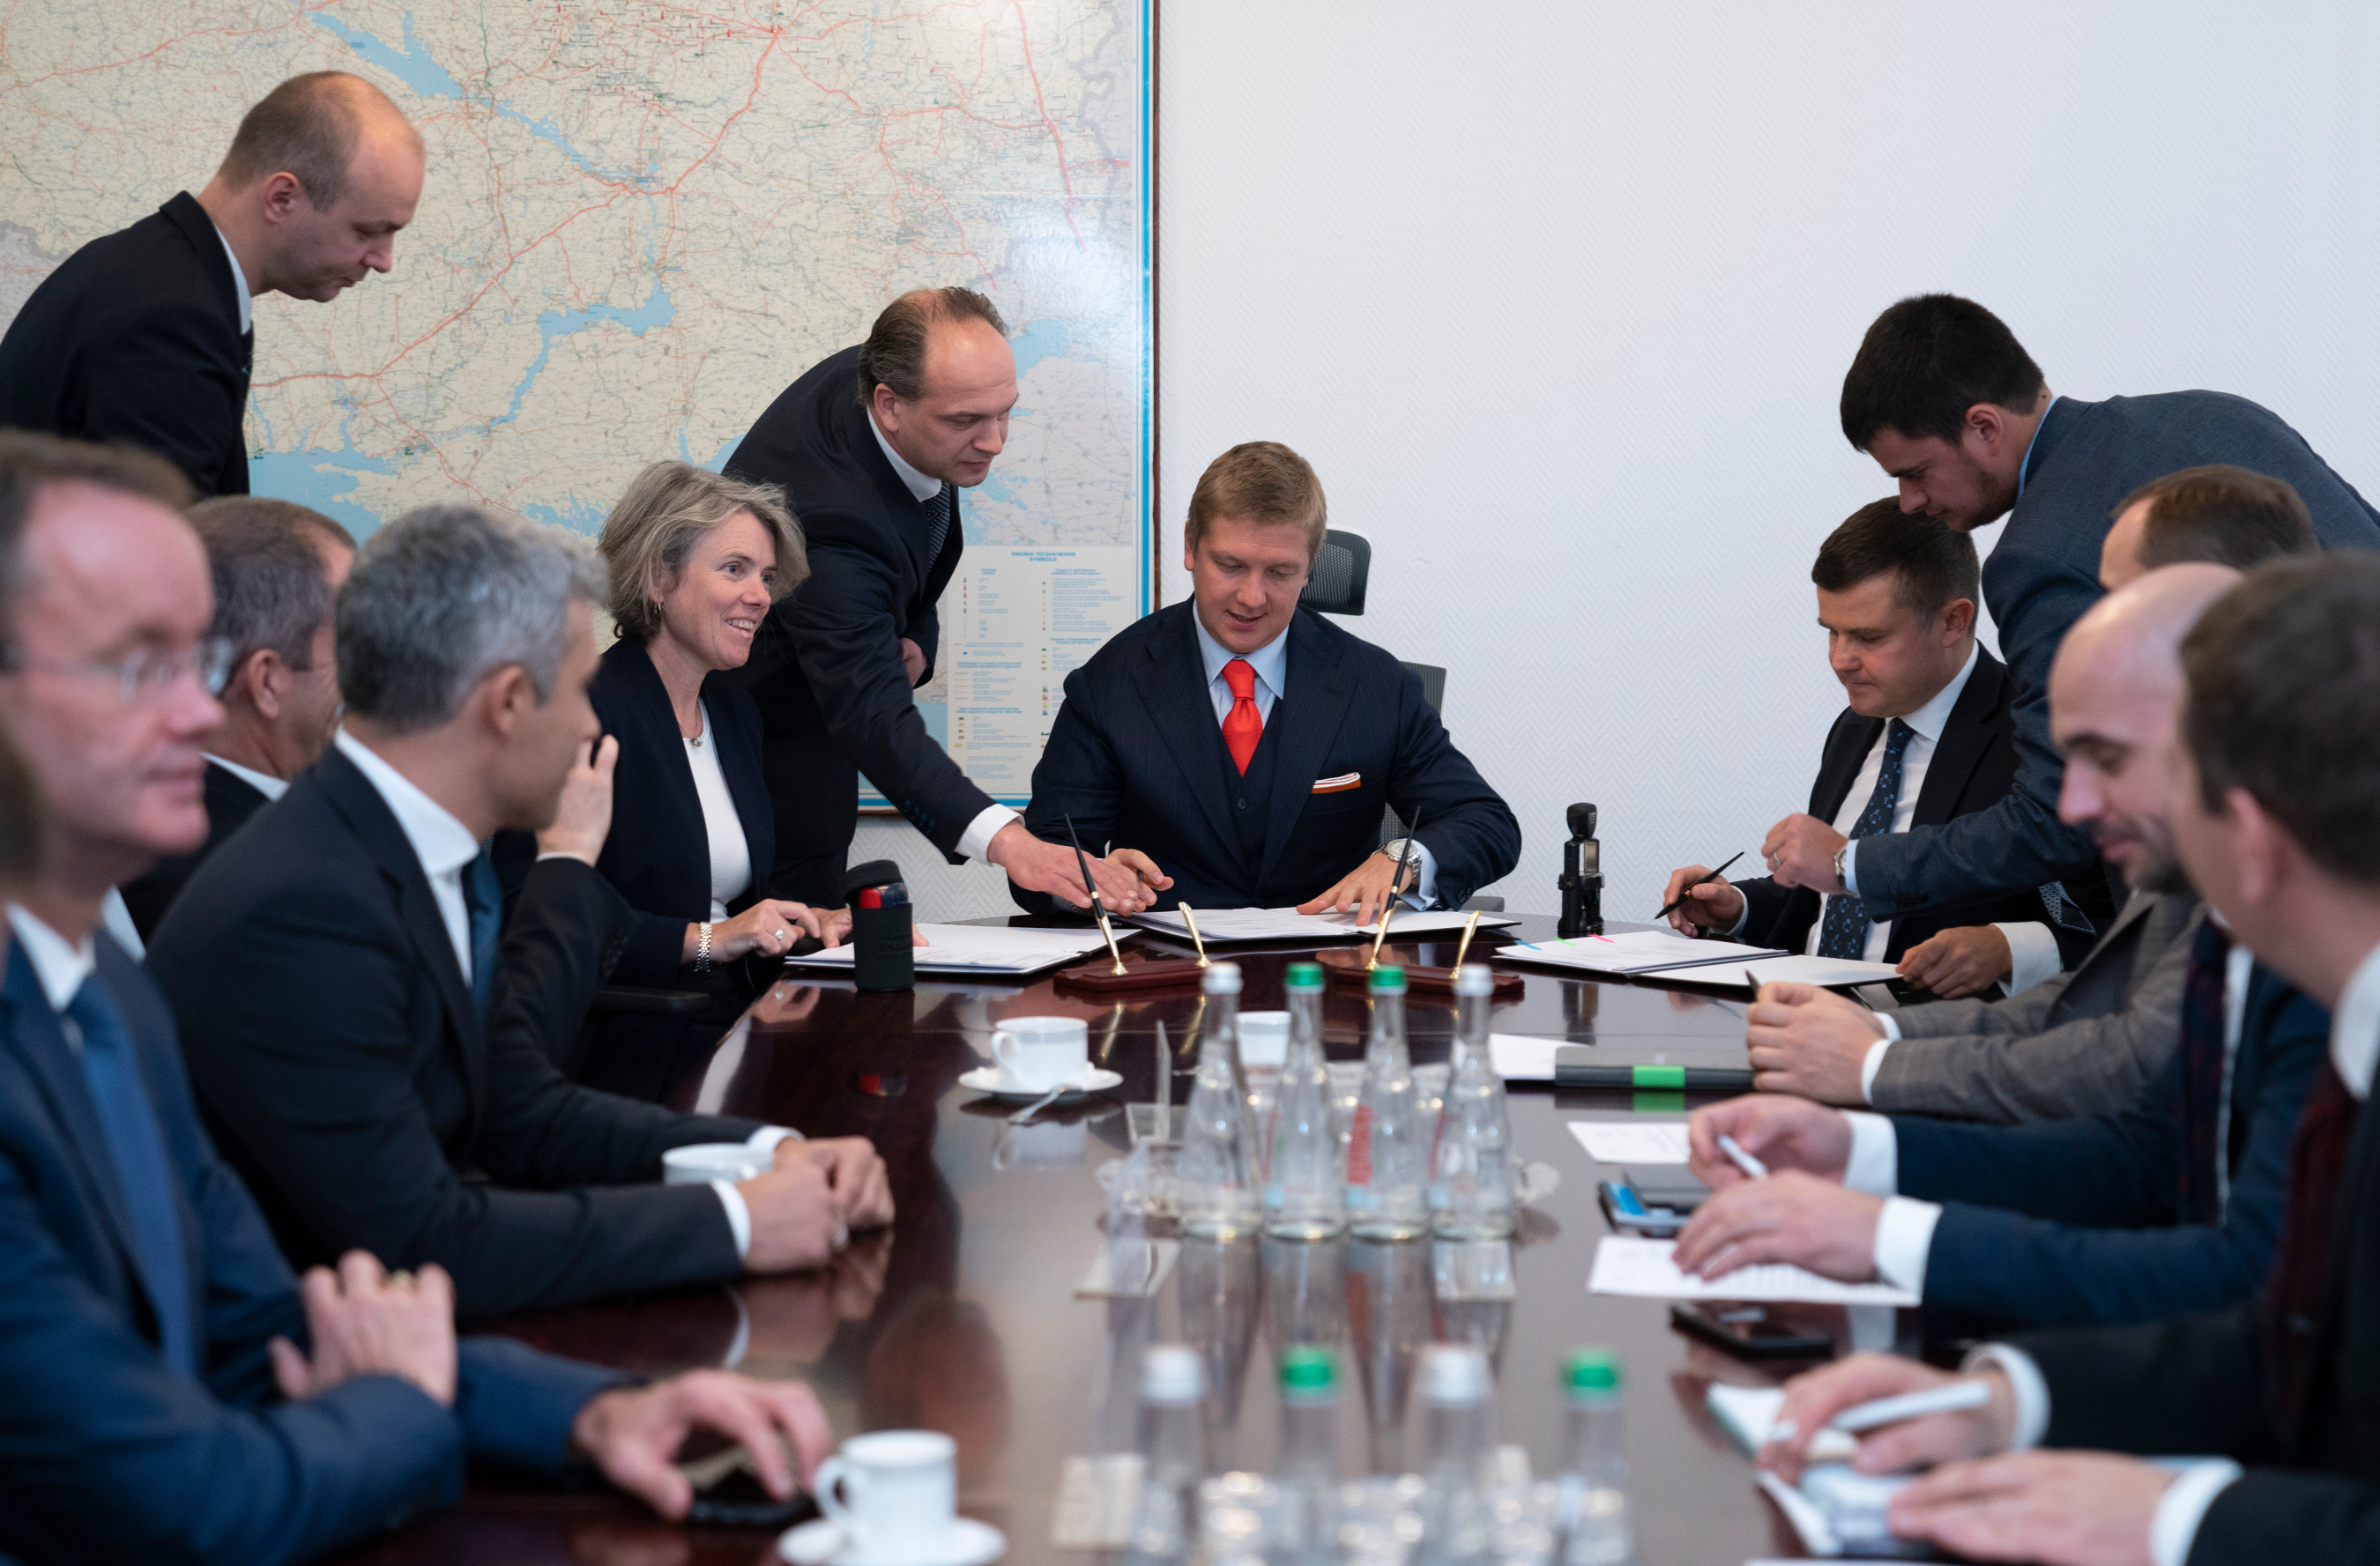 Naftogaz and Ukrgazvydobuvannya sign MoU with leading Oil & Gas service provider Schlumberger